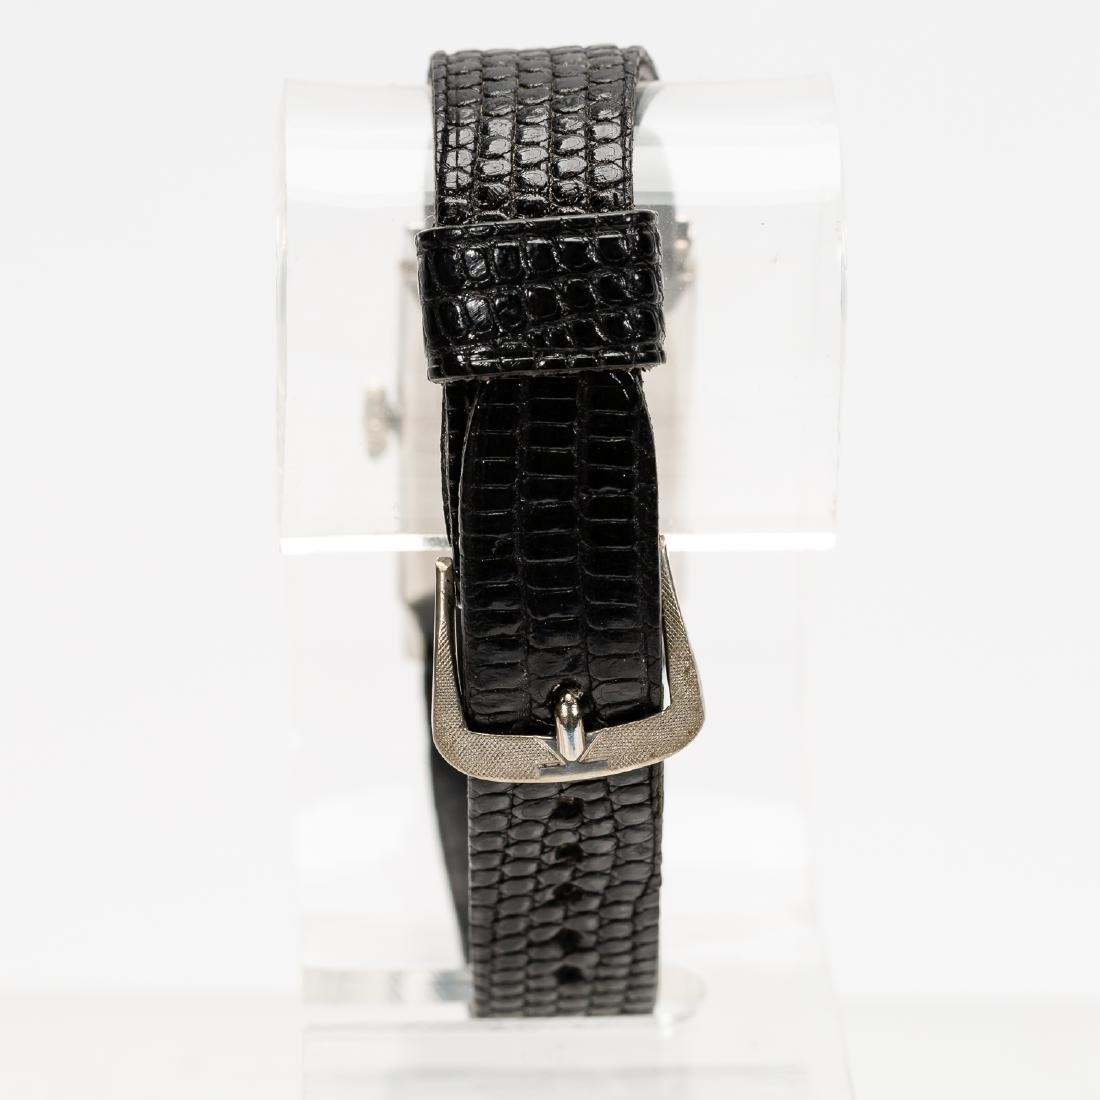 Hamilton Platinum & Diamond Wrist Watch - 3